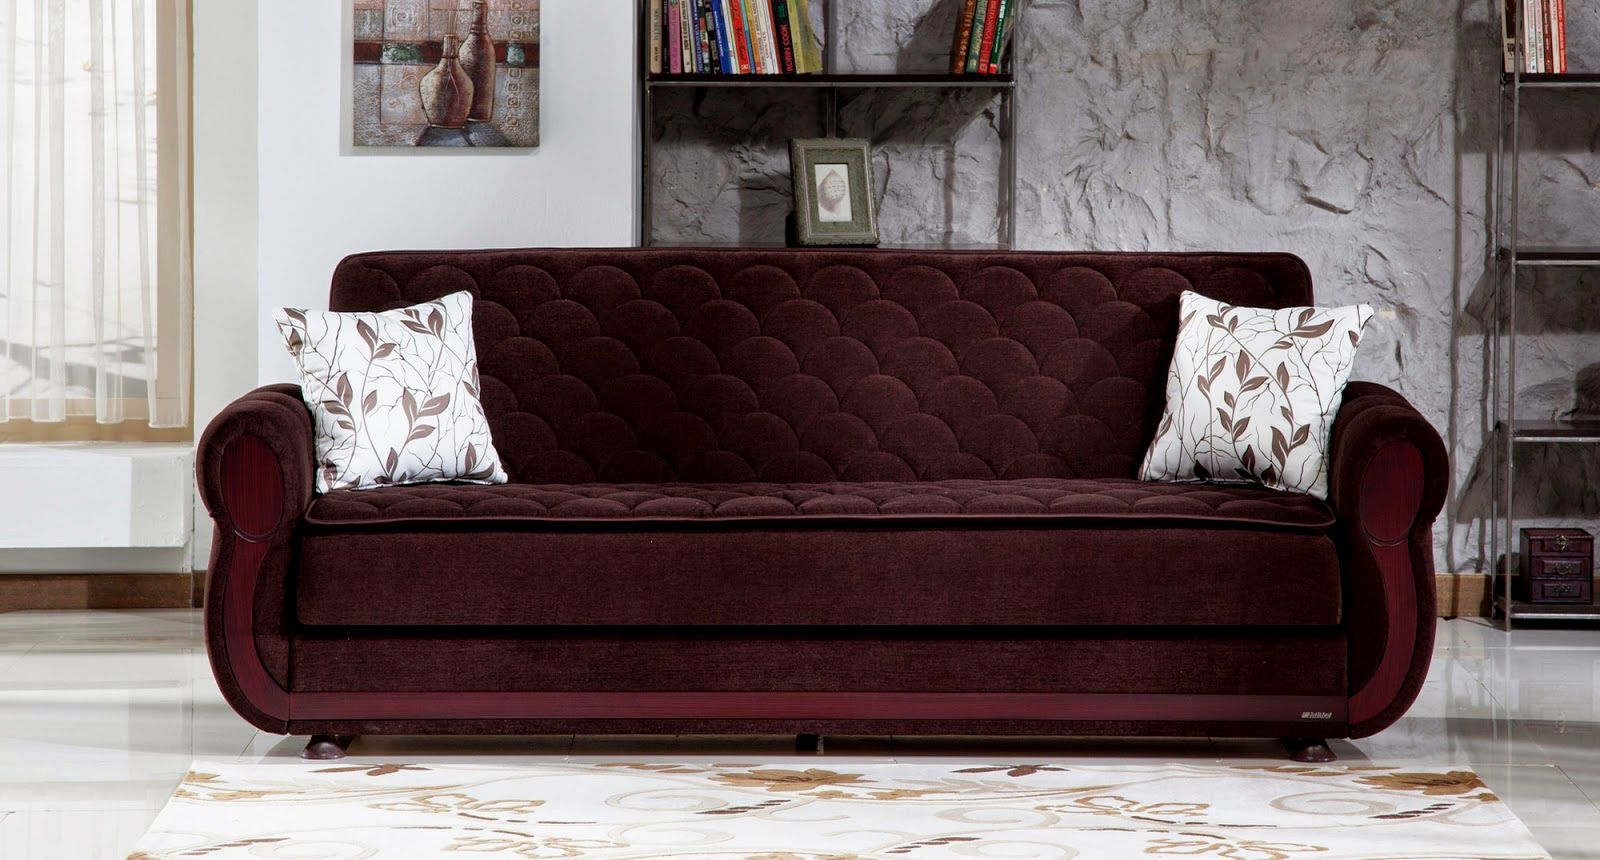 finest ashley sleeper sofa model-Wonderful ashley Sleeper sofa Concept